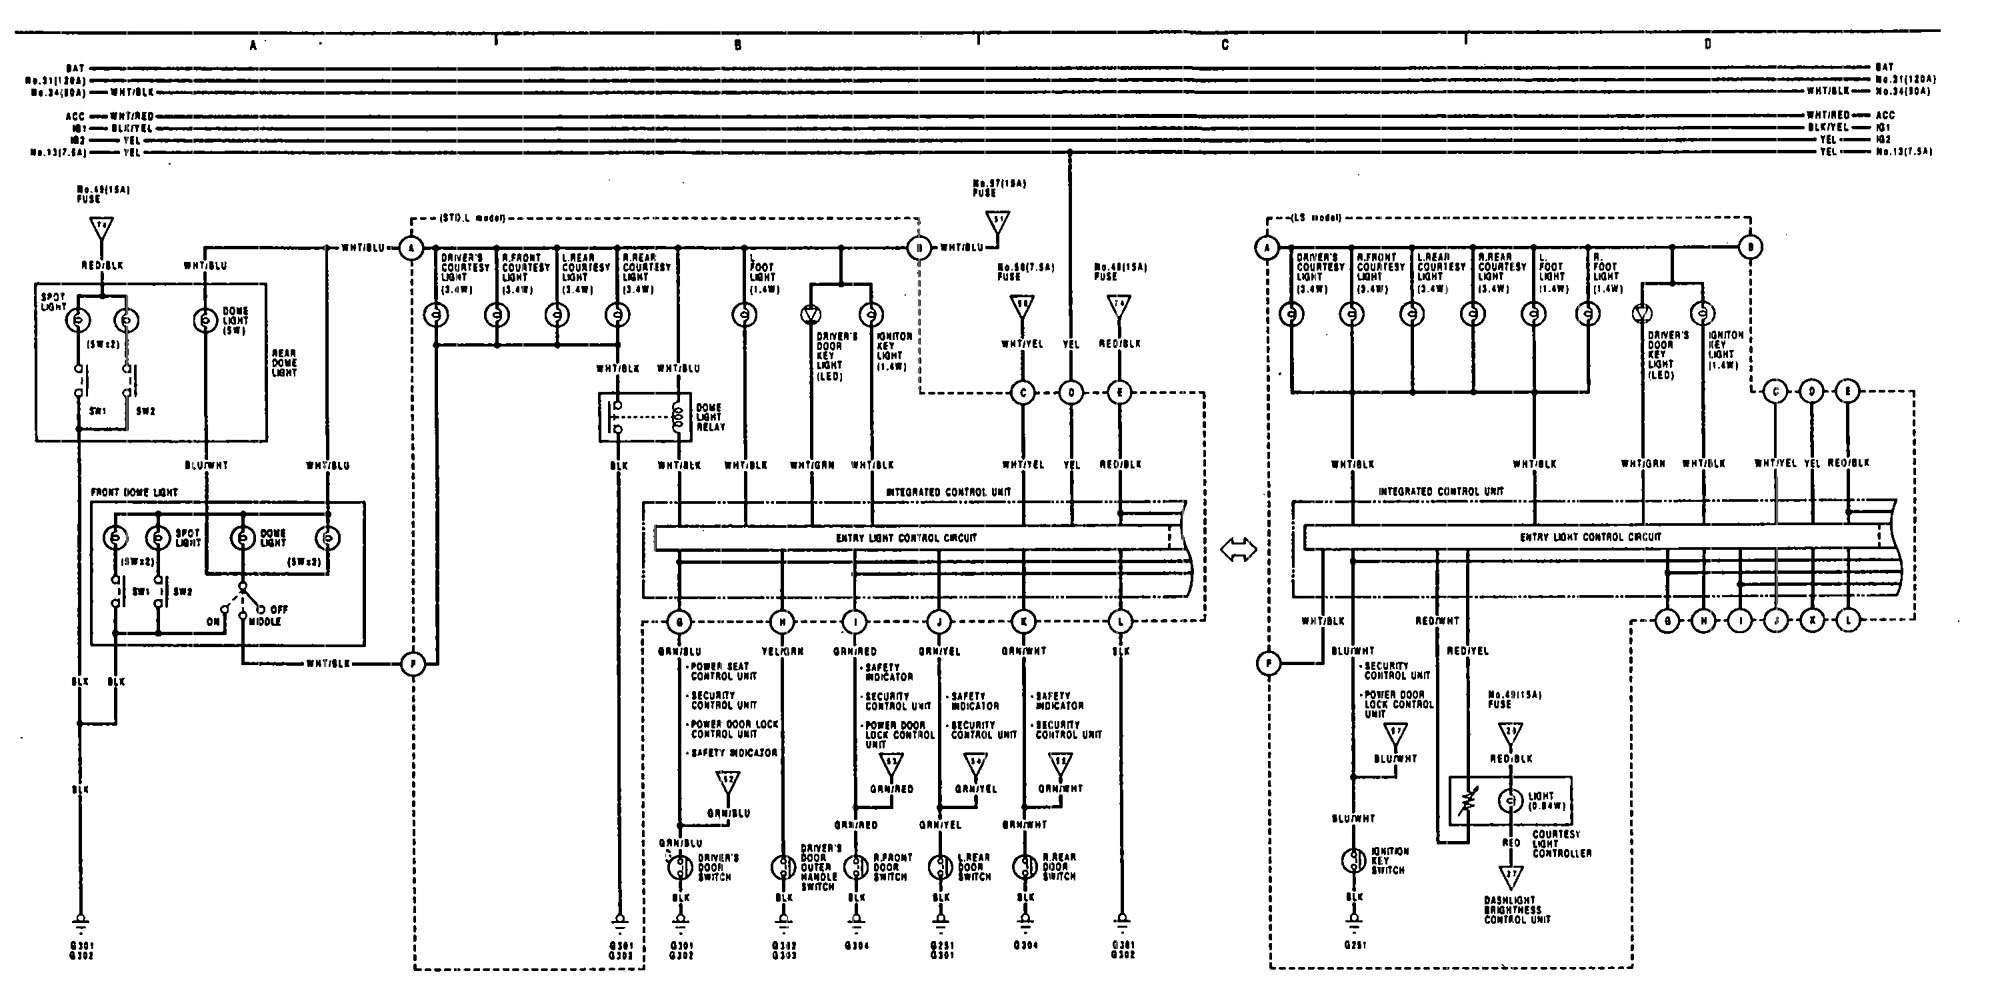 Wiring Diagram For 1991 Acura Legend 1990 Integra Vigor Fuse U2013 1992